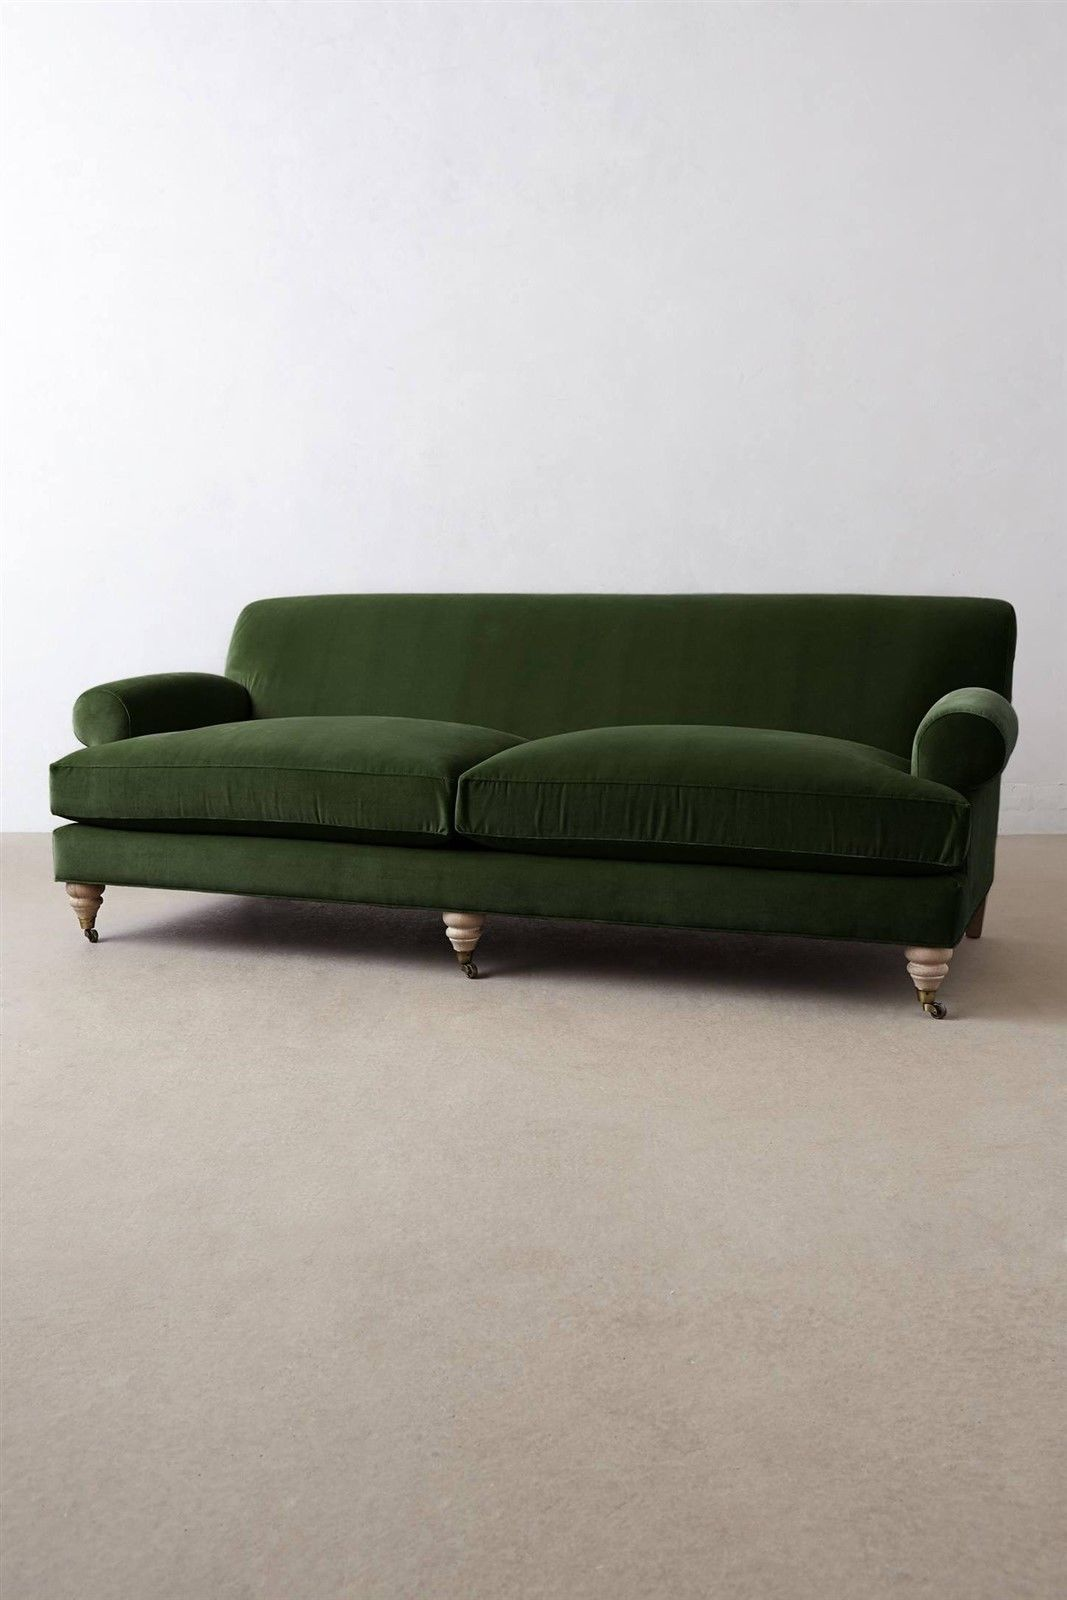 Made Sofa Velvet Velvet Couch Sofa Settee English Arms Rolled Emerald Green